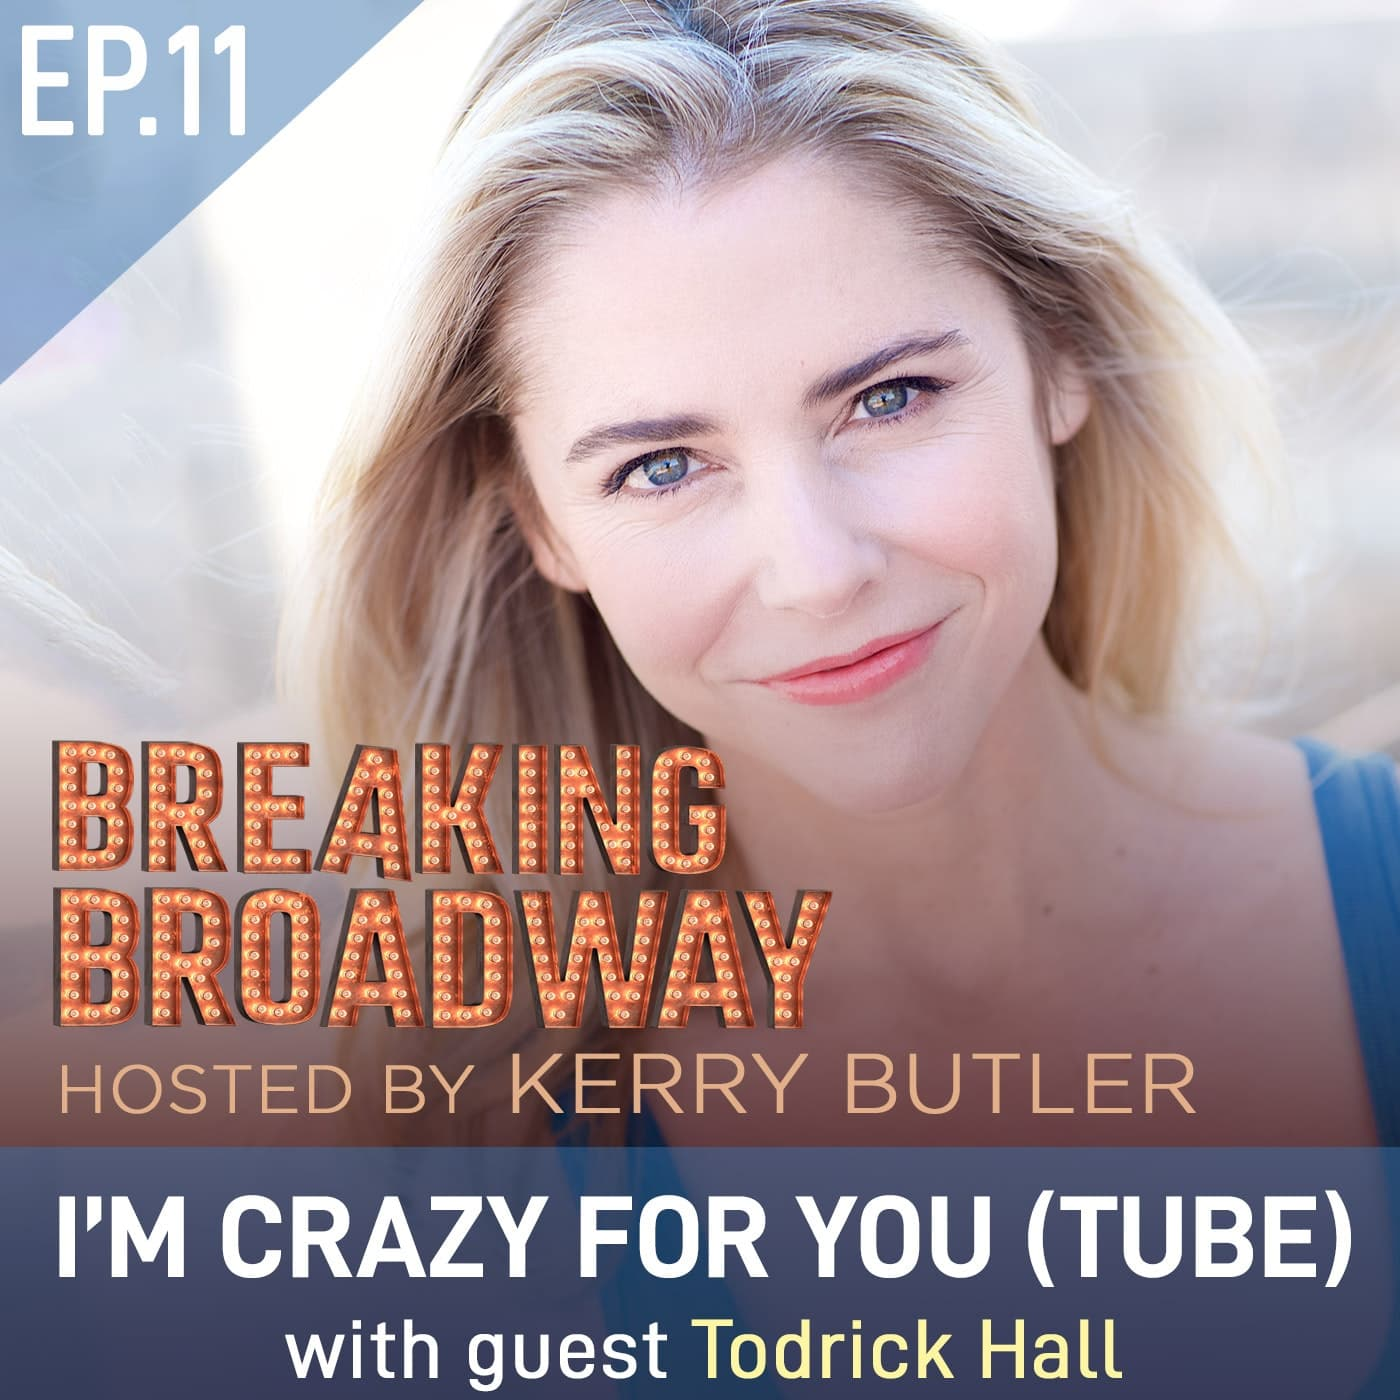 Ep11 - I'm Crazy for You (Tube), with Todrick Hall